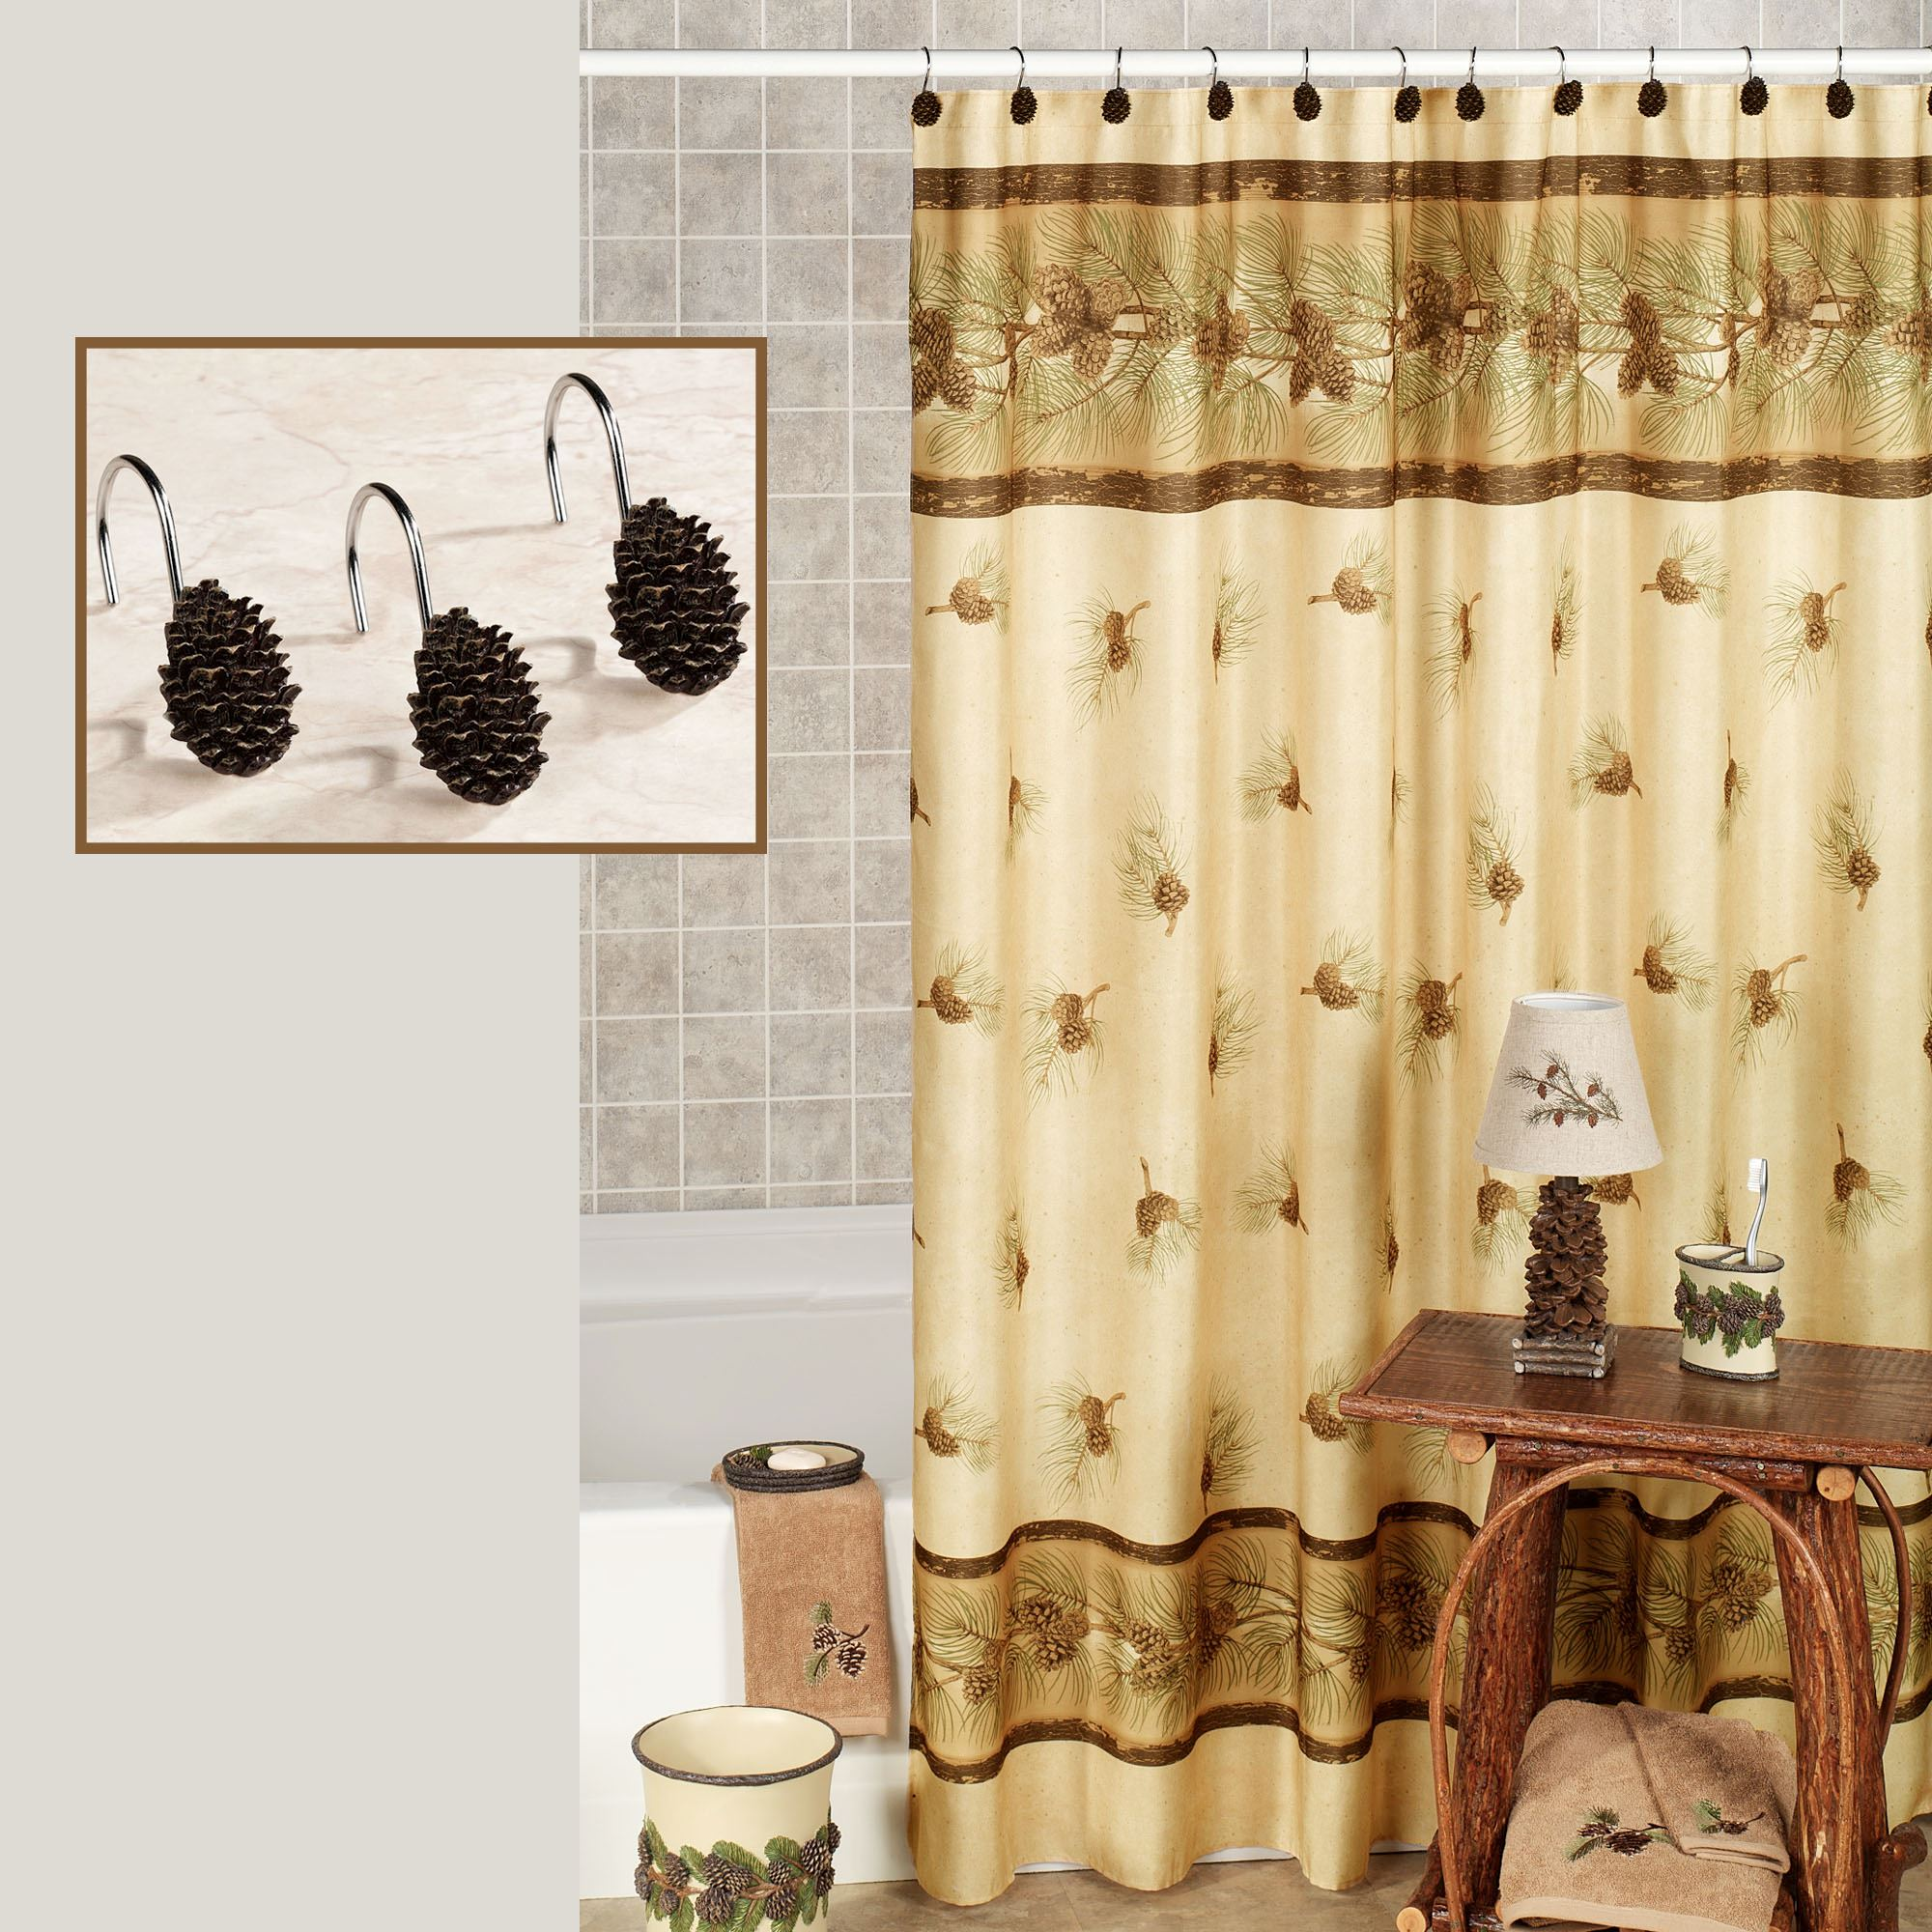 Pinehaven Shower Curtain Beige 70 x 70